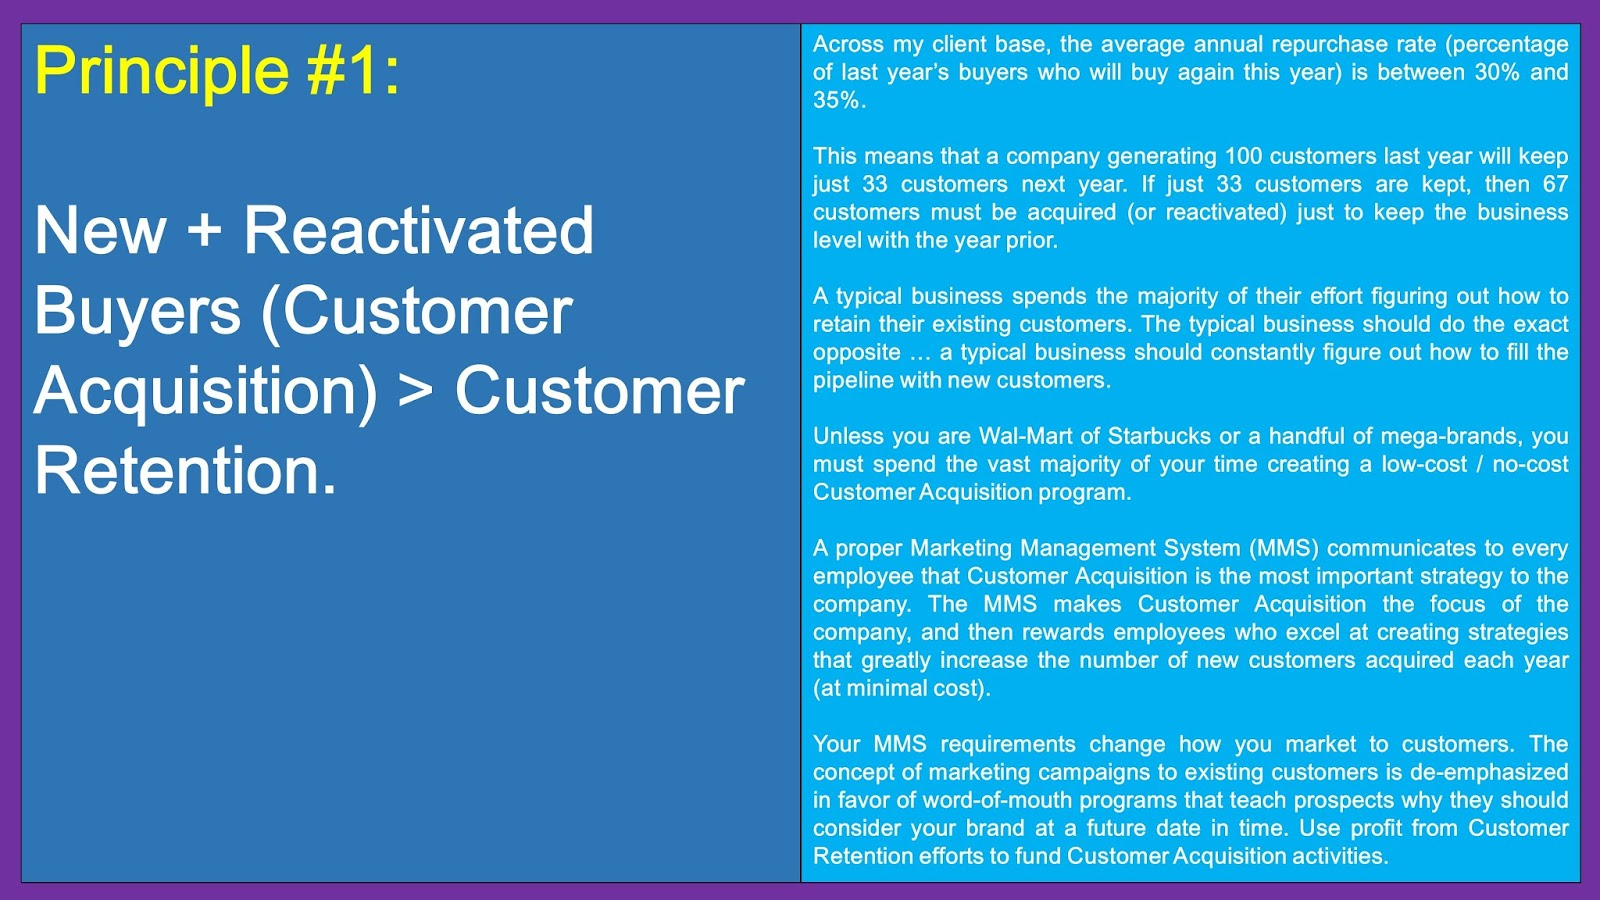 Kevin Hillstrom: MineThatData: Customer Awareness and